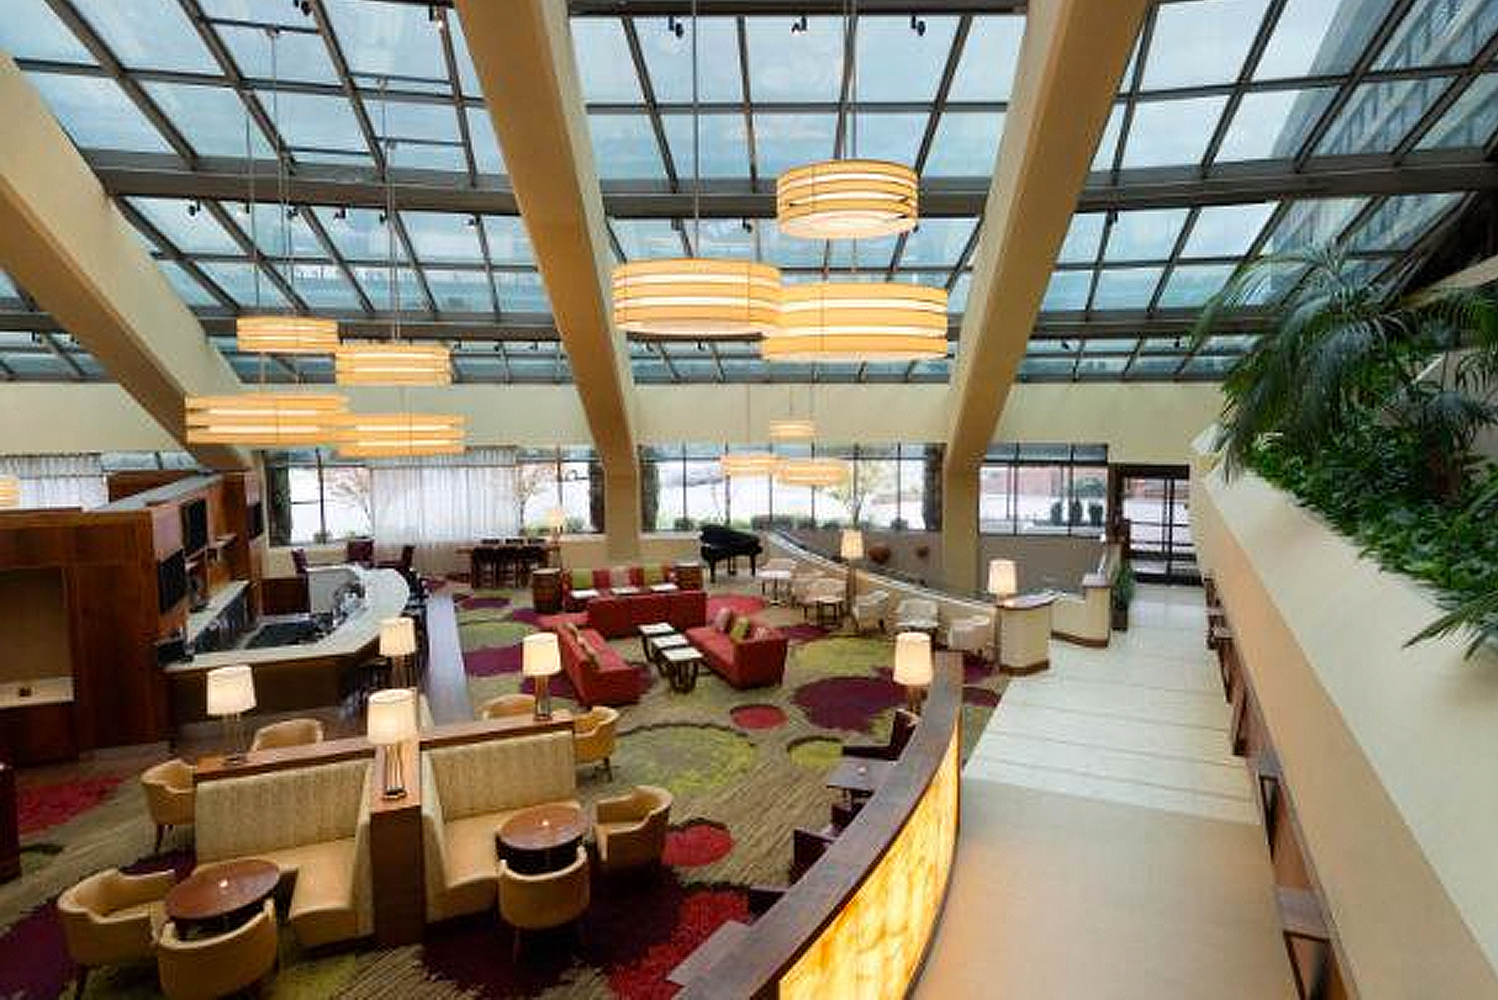 Redesign of WCG Hotels' property transforms guestrooms, meeting rooms, common areas, lounges and entrances into upscale experience.